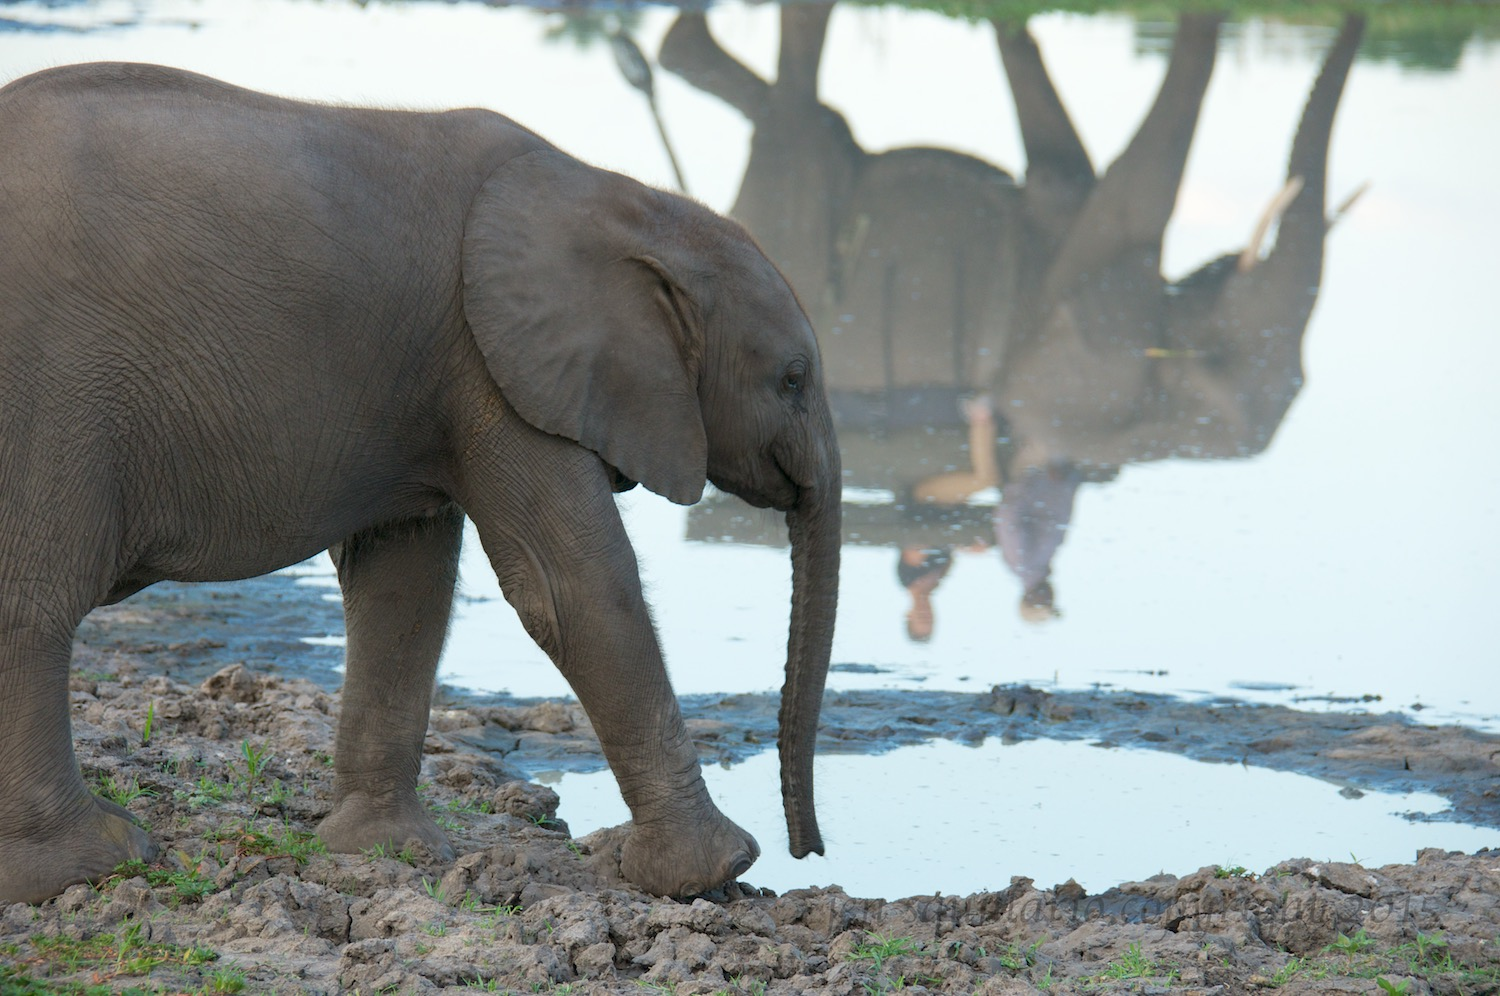 Getting a drink and catching the reflection of an elephant walking.